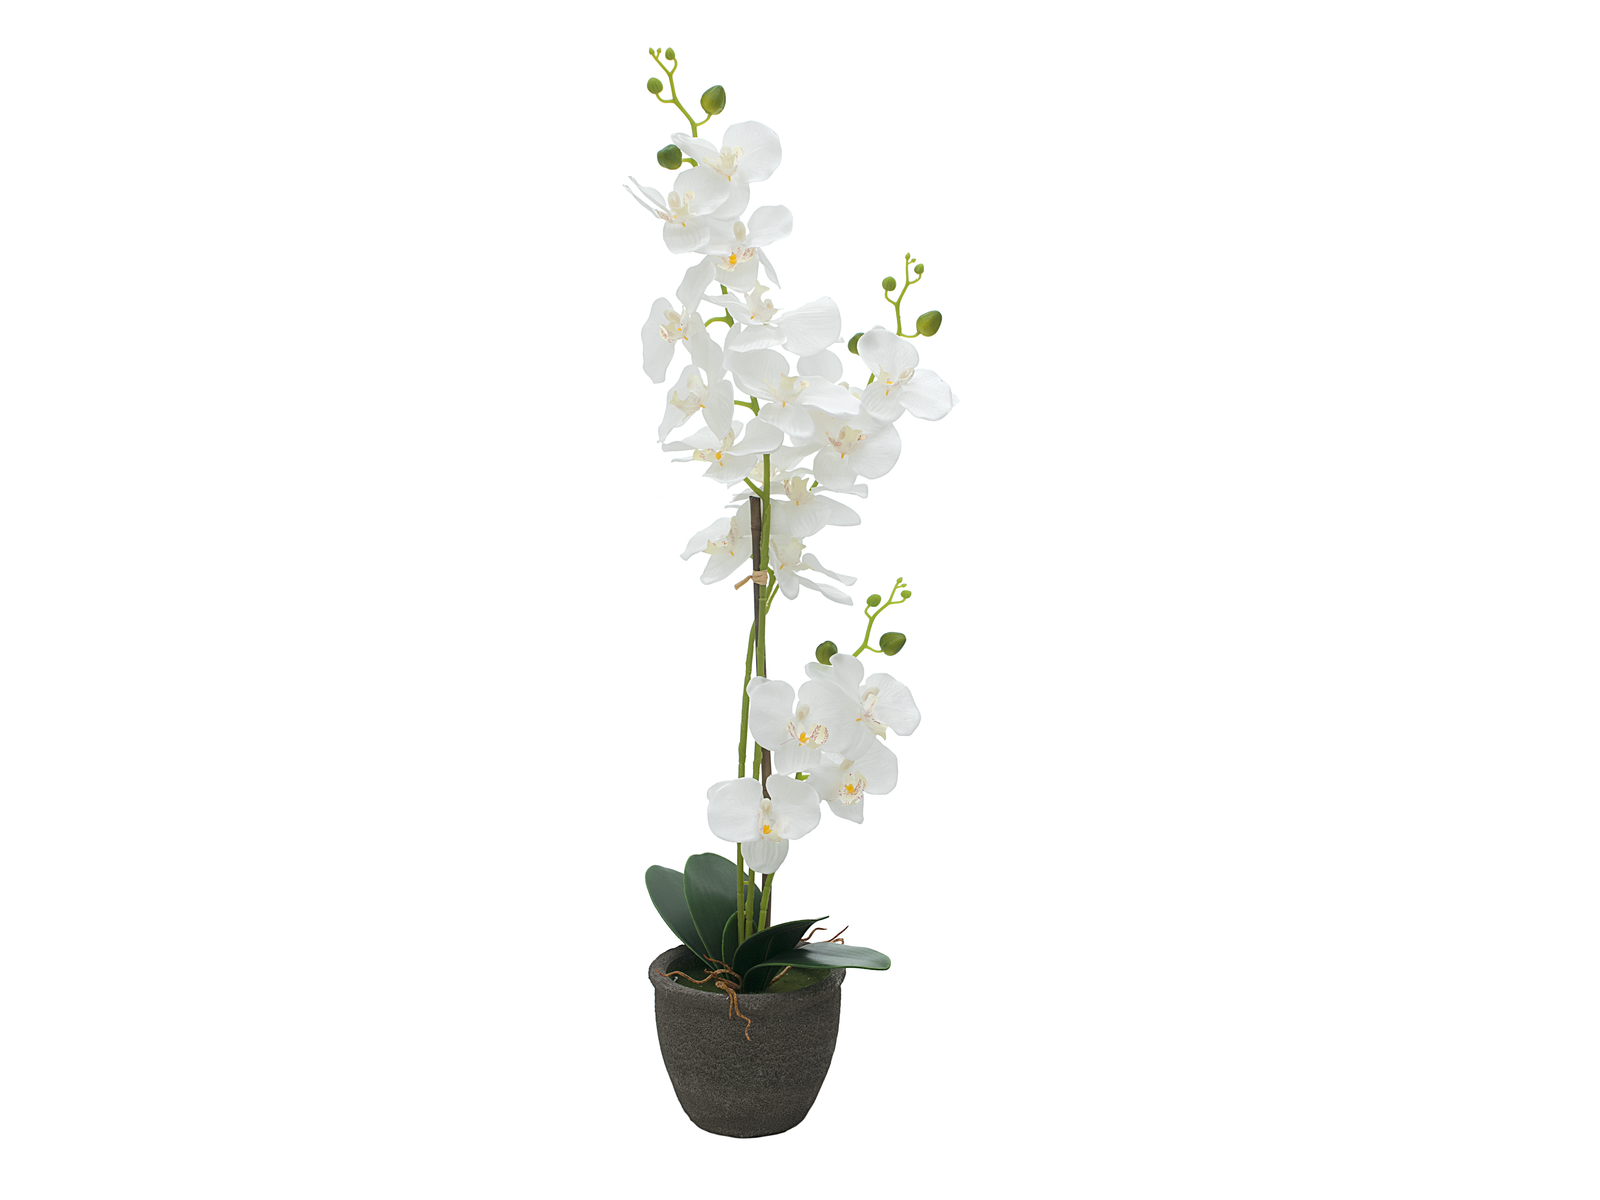 europalms-orchidee-kunstpflanze-weiay-65cm